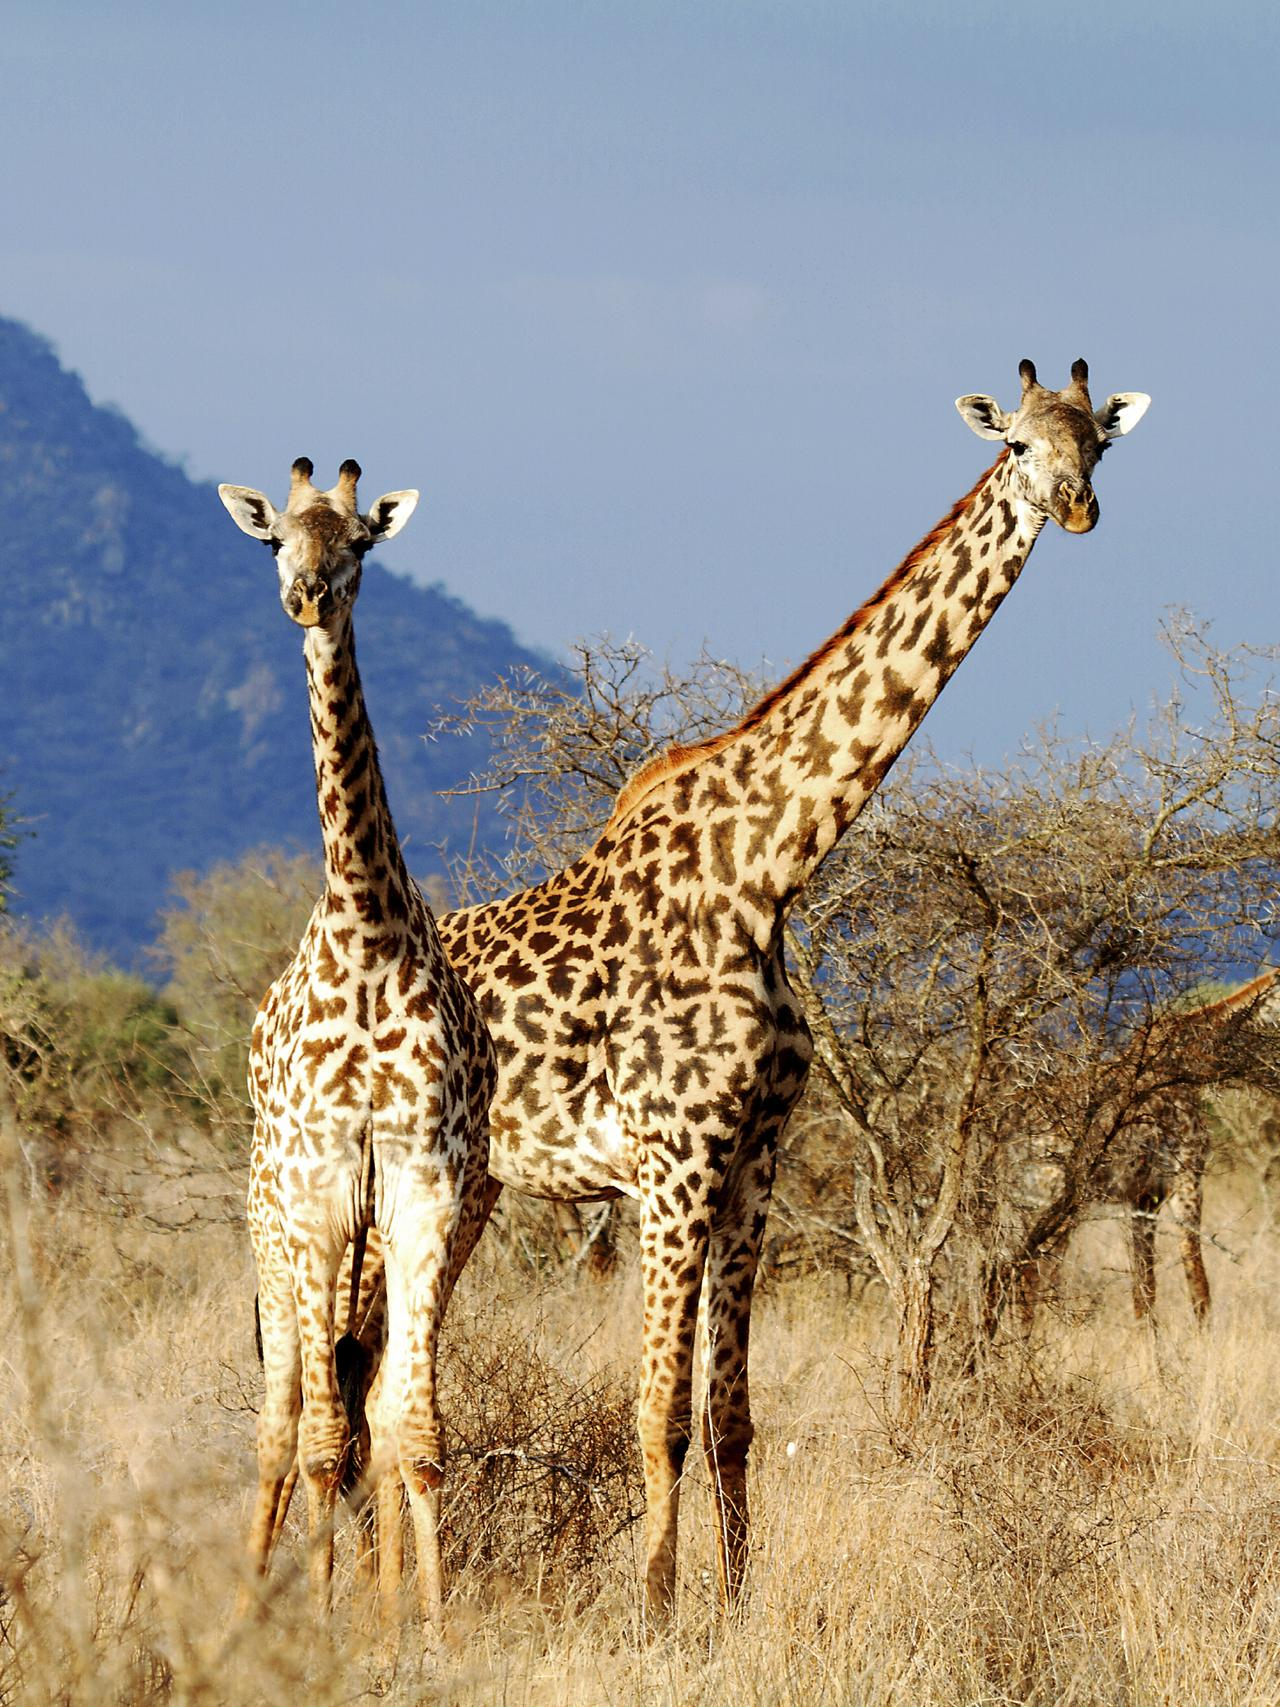 The Masai Giraffe or Maasai Giraffe, also known as the Kilimanjaro Giraffe in Kenya. Picture: iStock